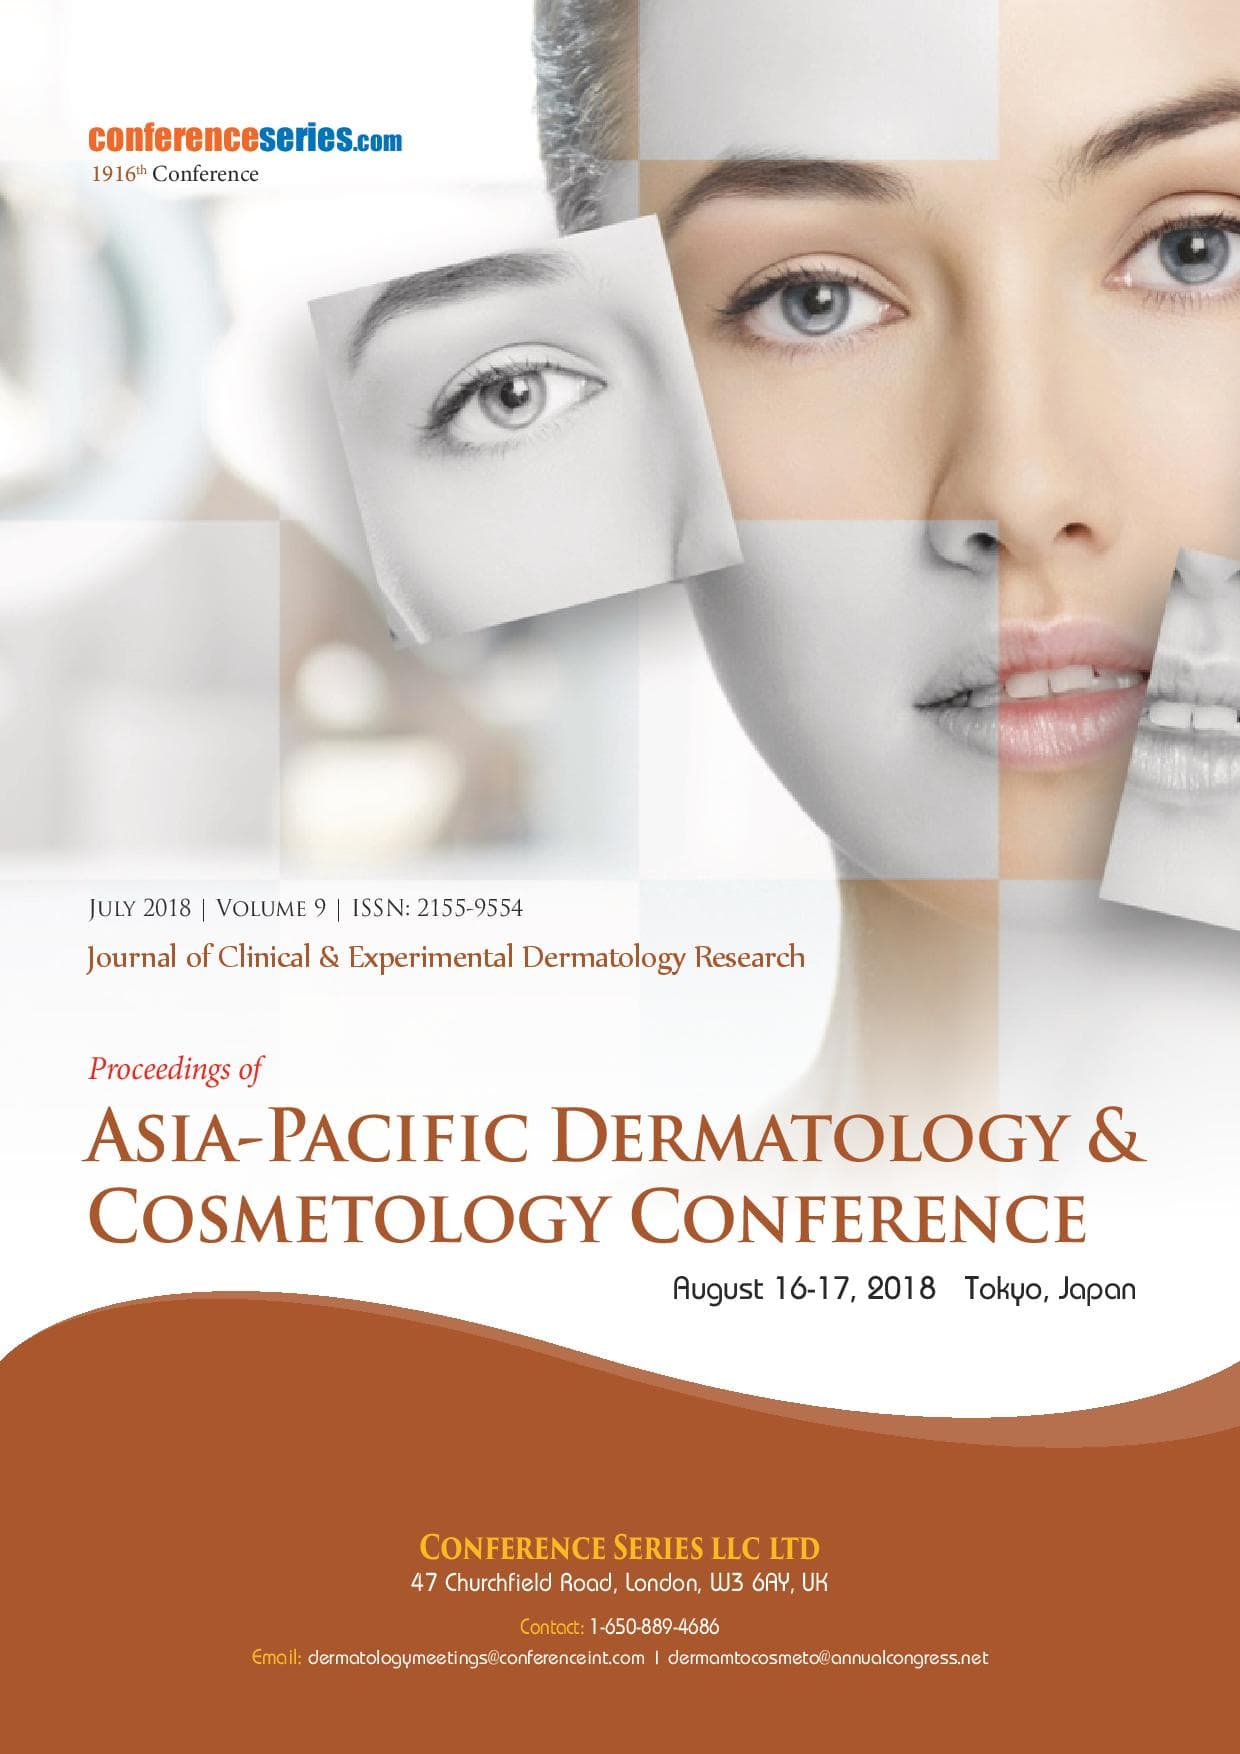 Dermatology Meetings 2018